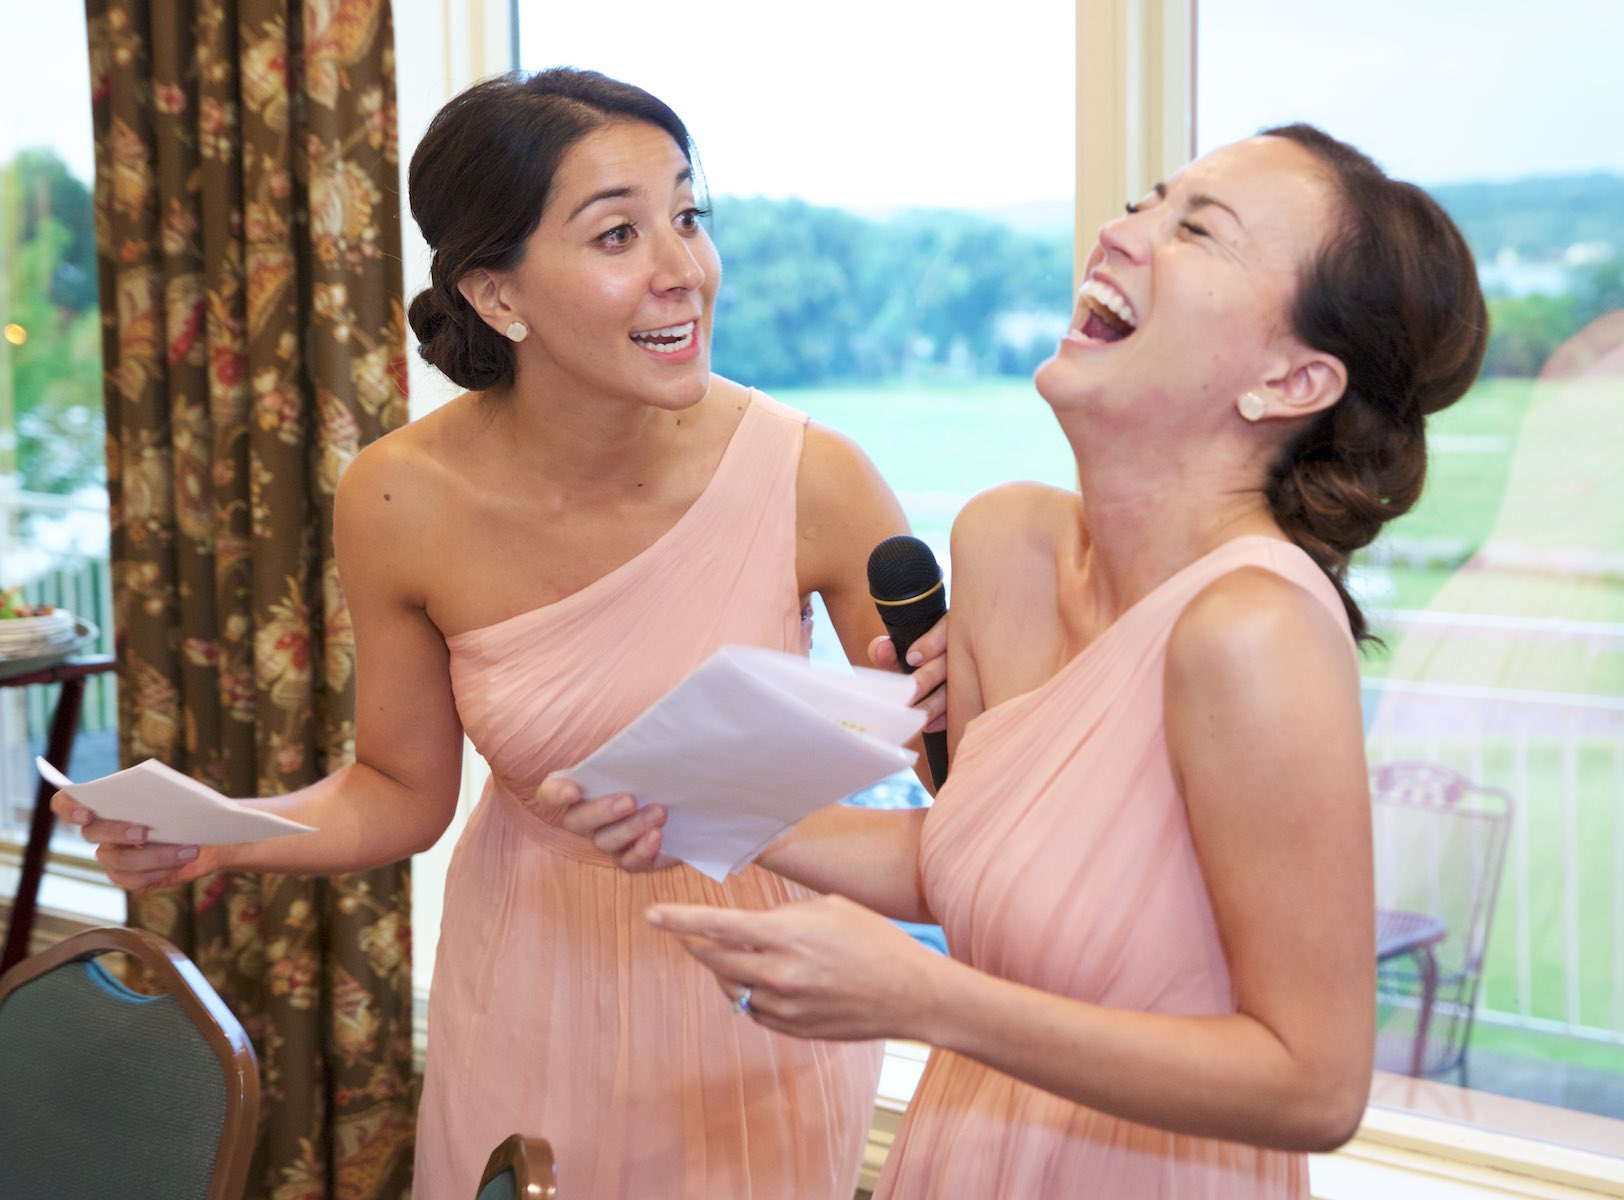 Emi's sisters laugh during their toast and speech, wedding at Geneva National Golf Club in Lake Geneva, Wisconsin. Wedding photography by Steve & Tiffany Warmowski.